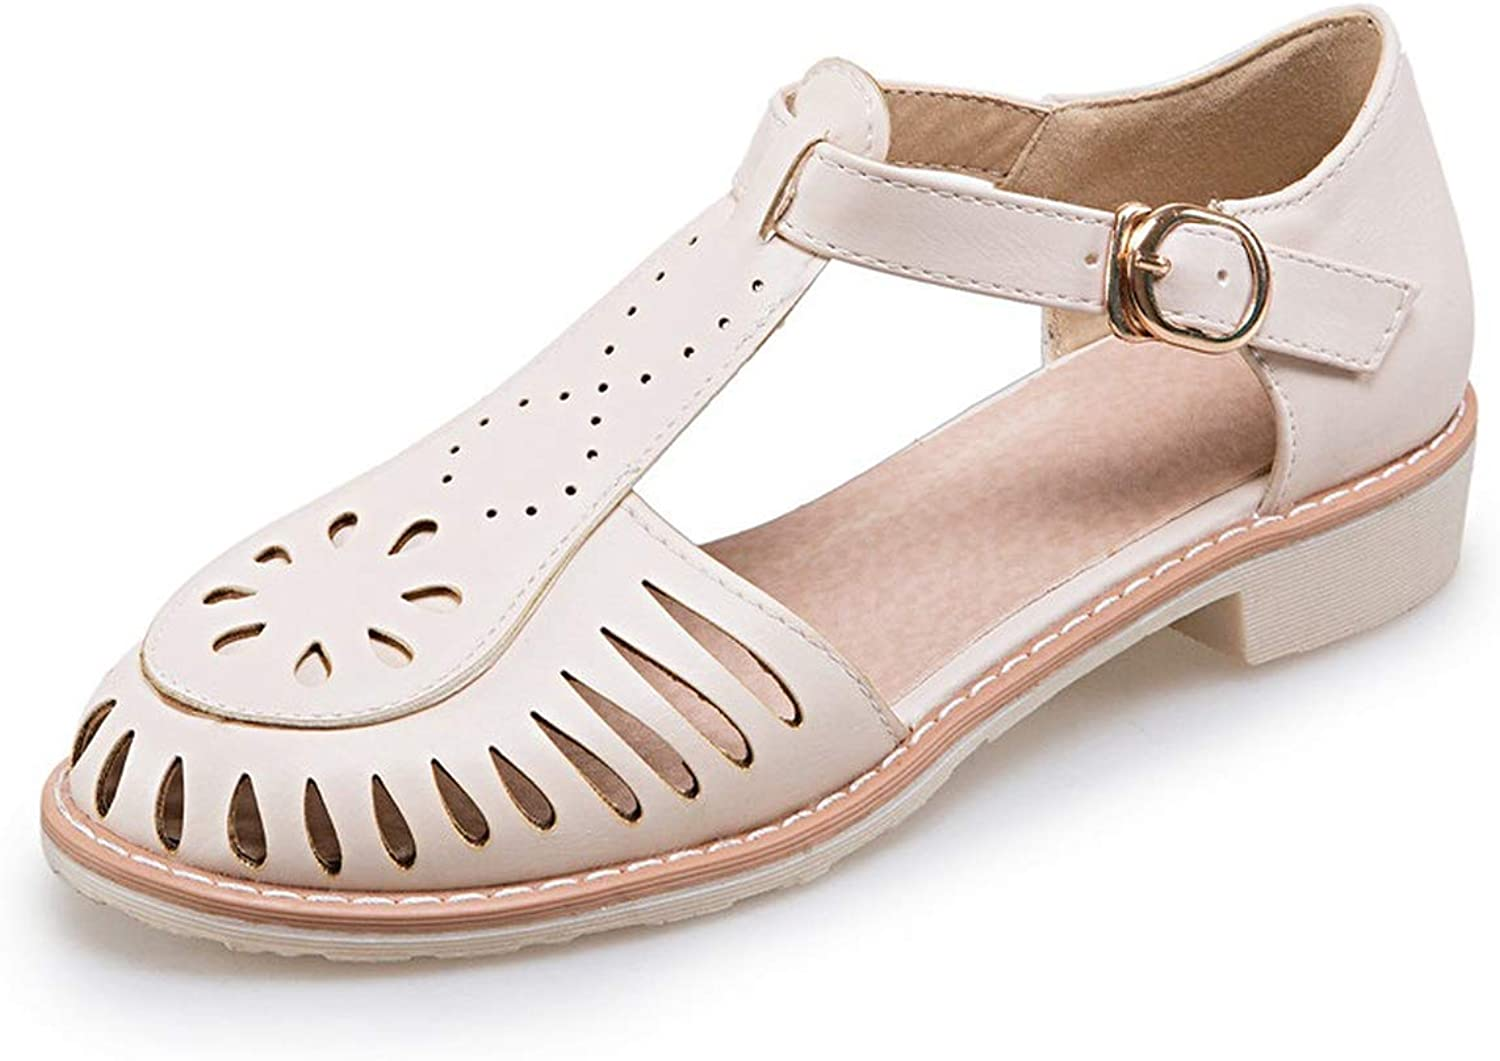 Casual shoes Solid color Buckle Low Heels Sandals Fashion Cover Heel Summer shoes